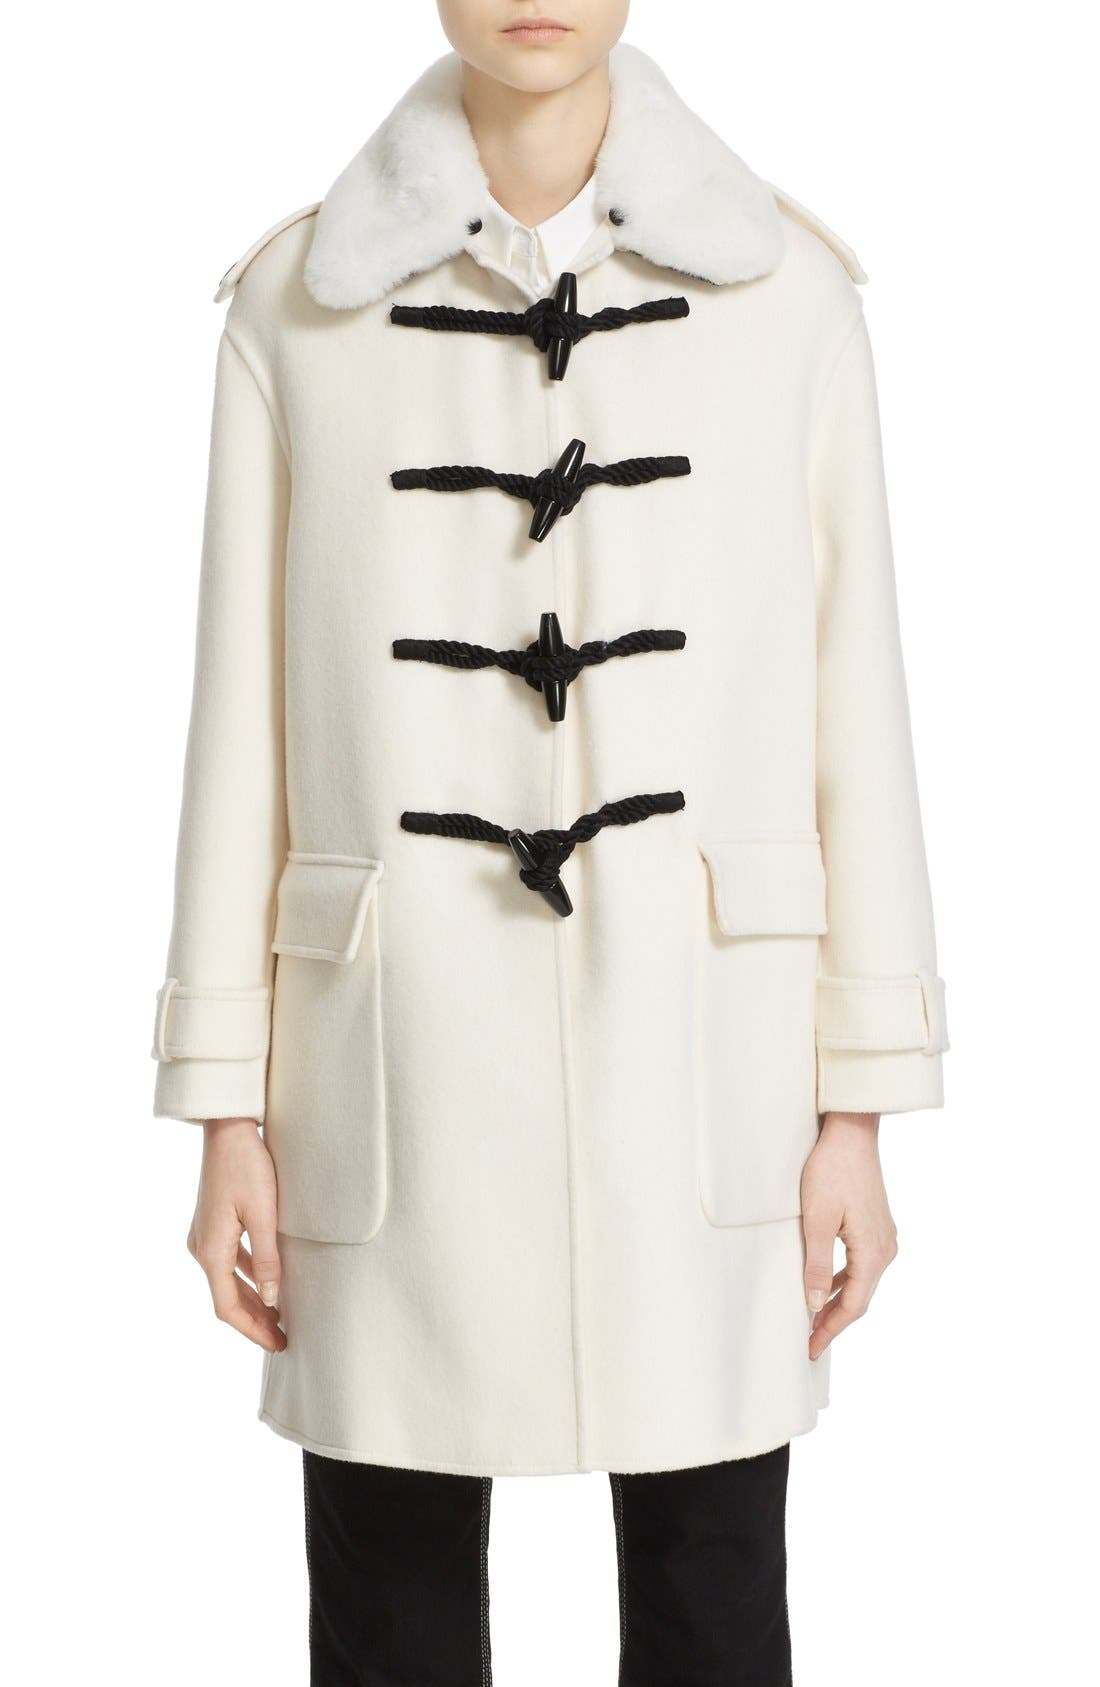 BURBERRY 'Highgate' Cashmere Duffle Coat with Removable Genuine Rabbit Fur Collar, Main, color, 900